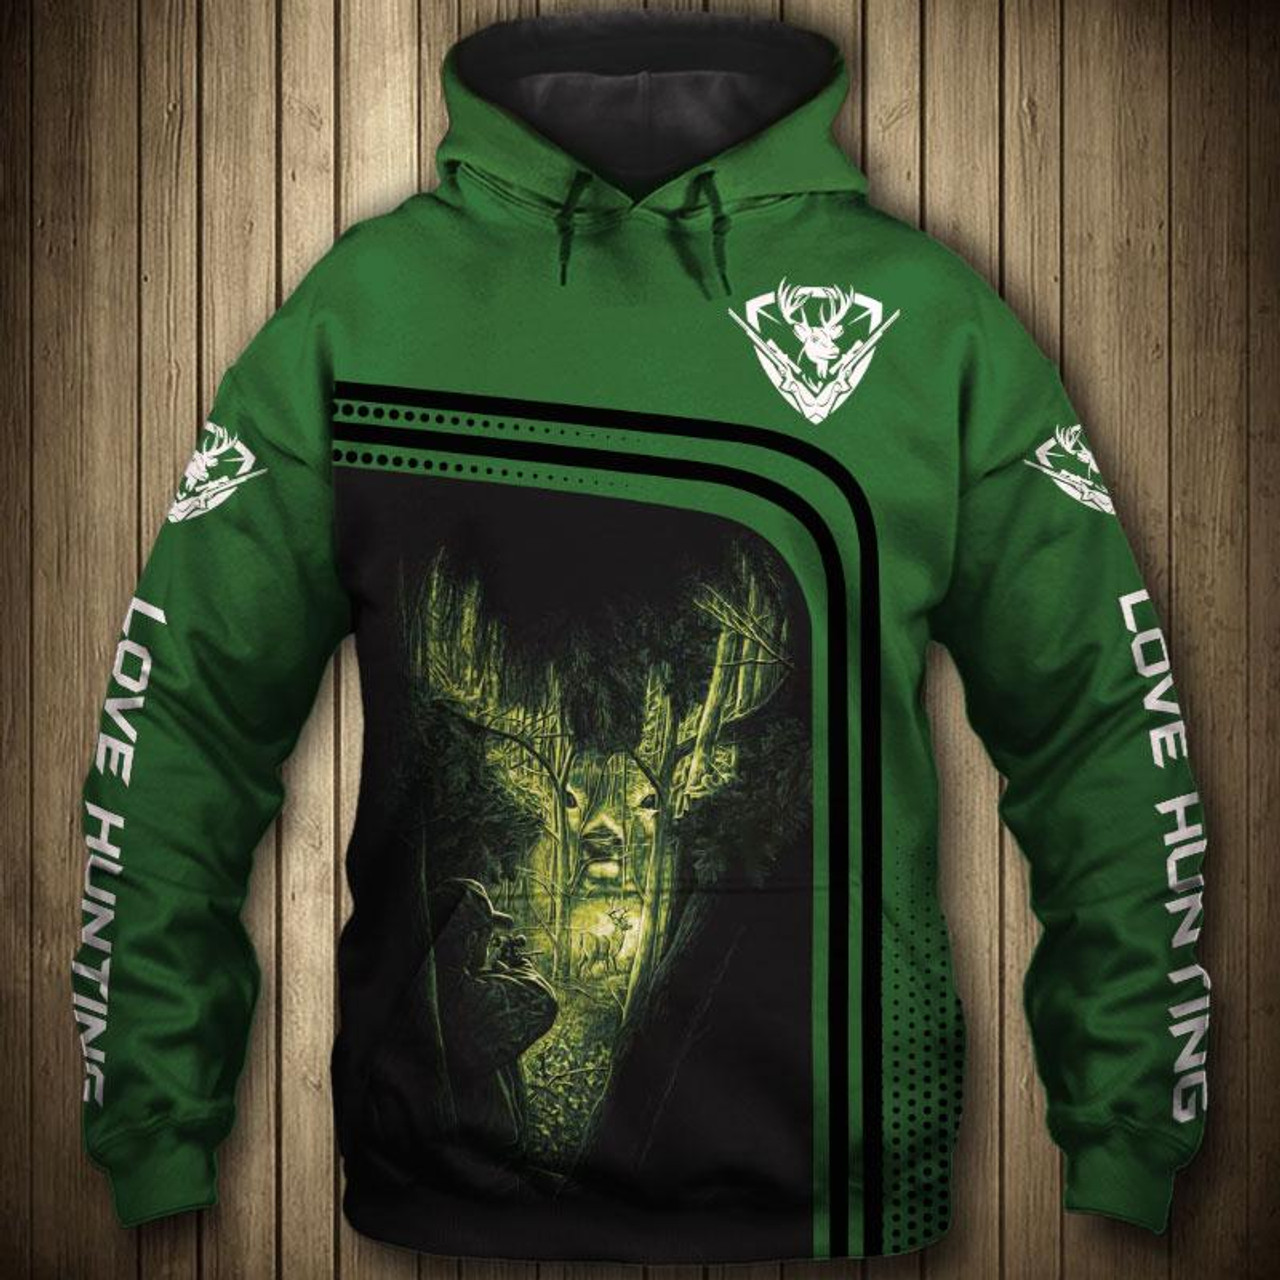 c5736d3b **(OFFICIAL-BUCK-HUNTING-HOODIES/3-D-CUSTOM-DETAILED-GRAPHIC-PRINTED /DOUBLE-SIDED-ALL-OVER-PRINTED-DESIGN/LOVE-HUNTING-DOWN-SLEEVES ...